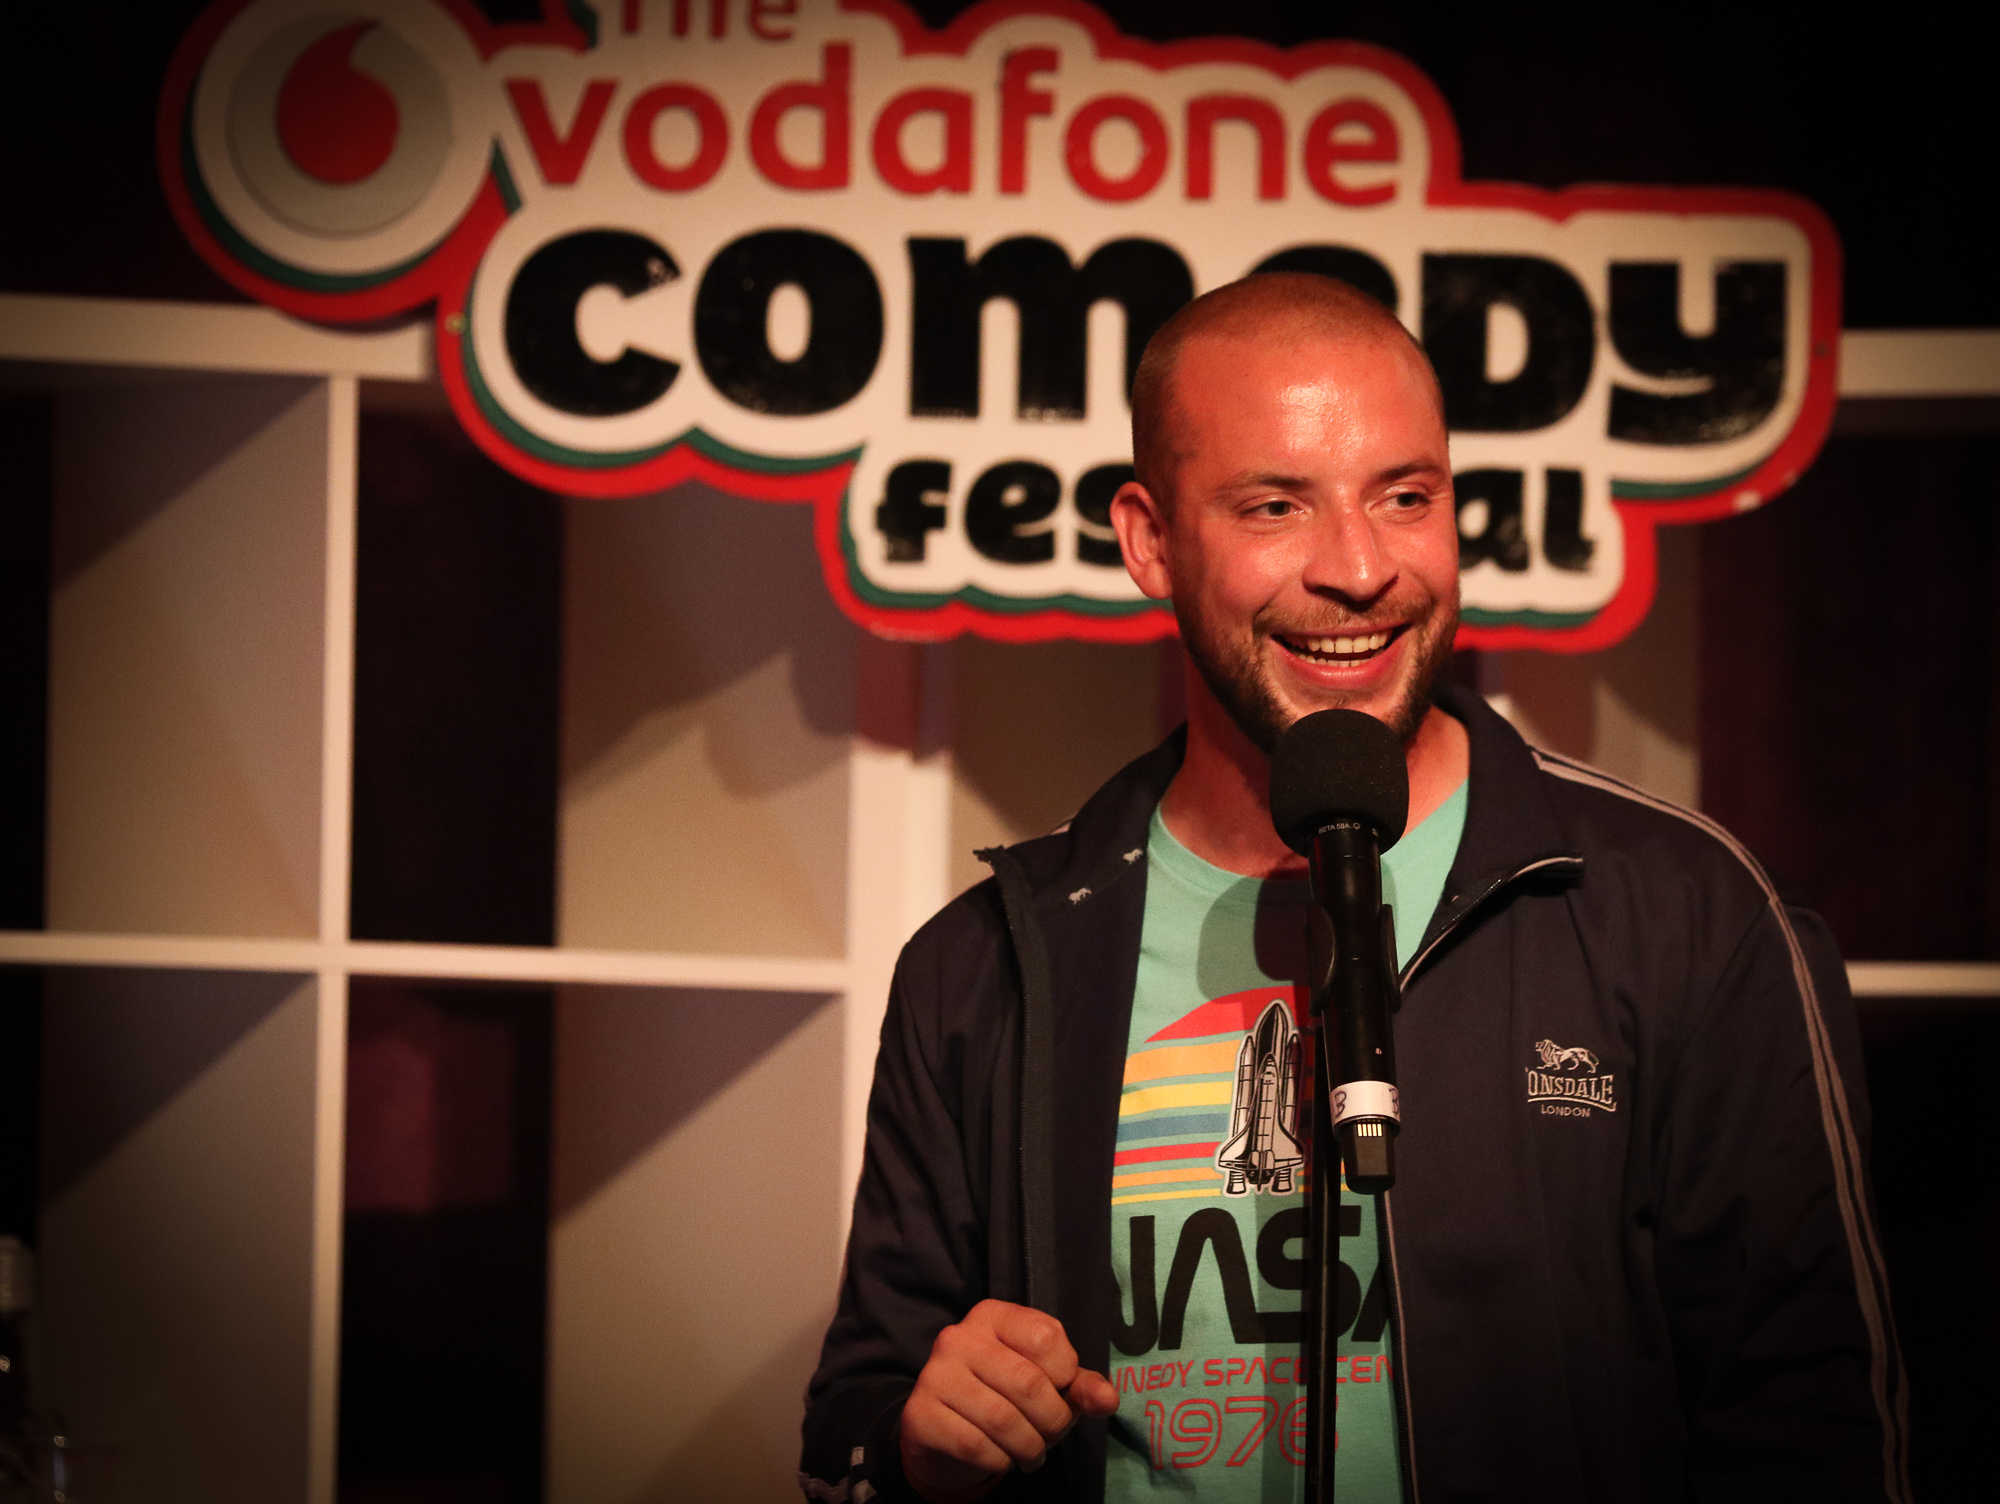 Cherry Comedy at the Vodafona Comedy Festival 2019 (19).jpg